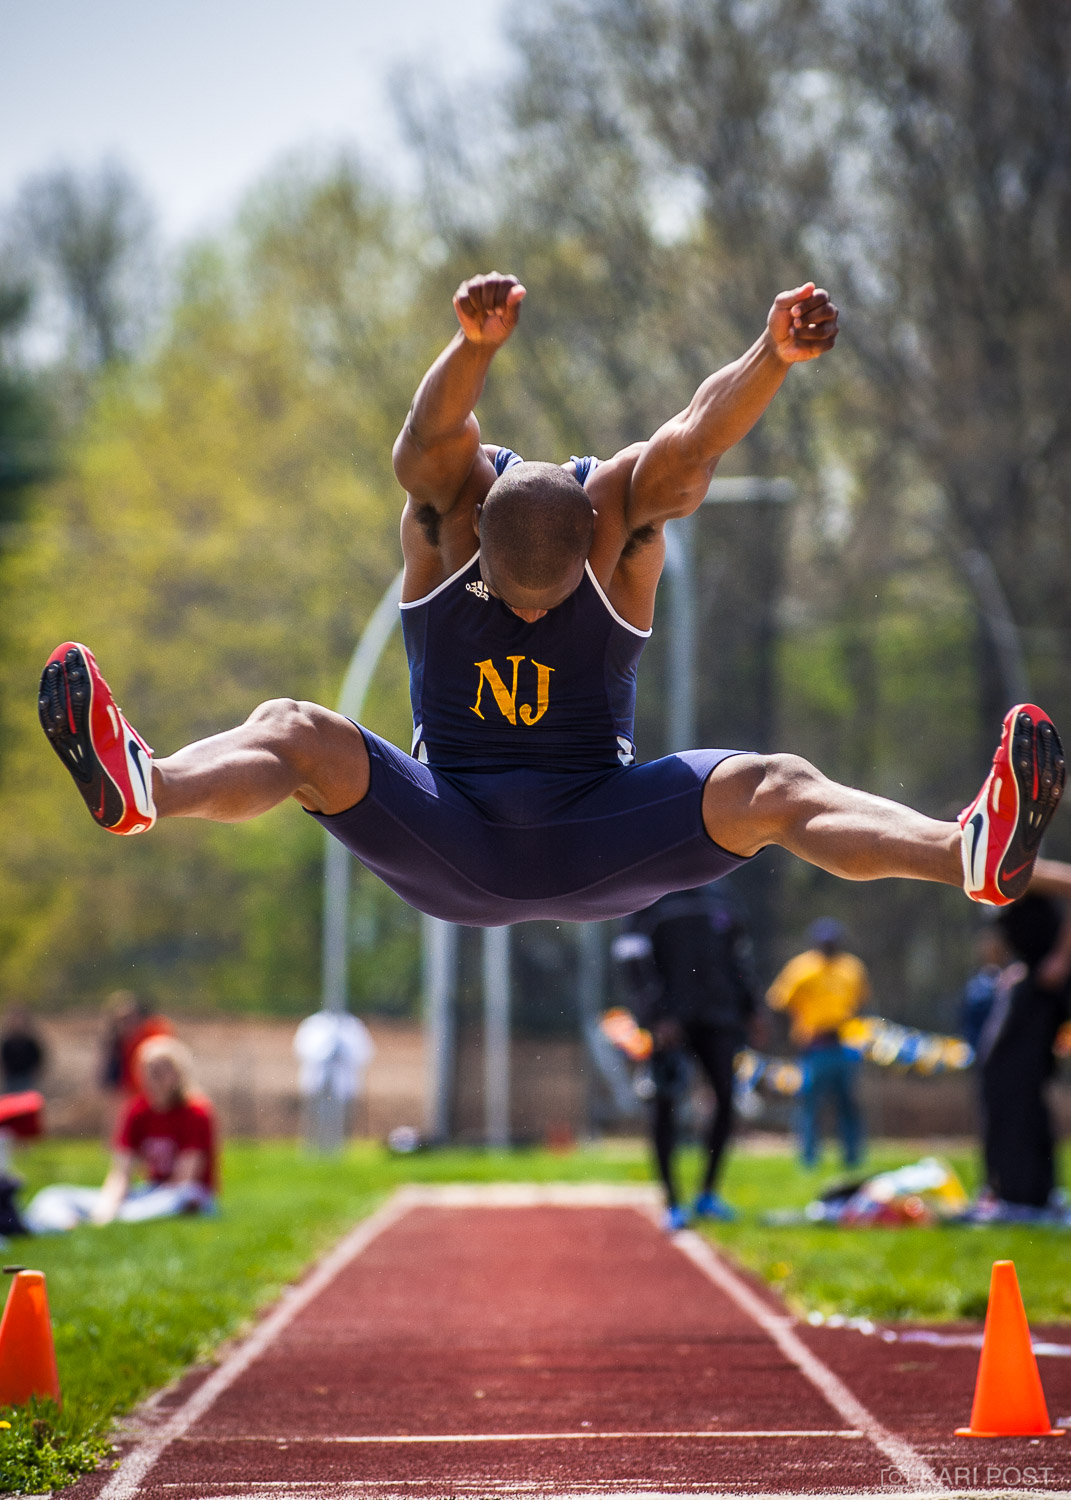 TCNJ, TCNJ Lions, The College of New Jersey, Track and Field, athletics, college, sports, Kevin Jones, track and field, long jump, photo